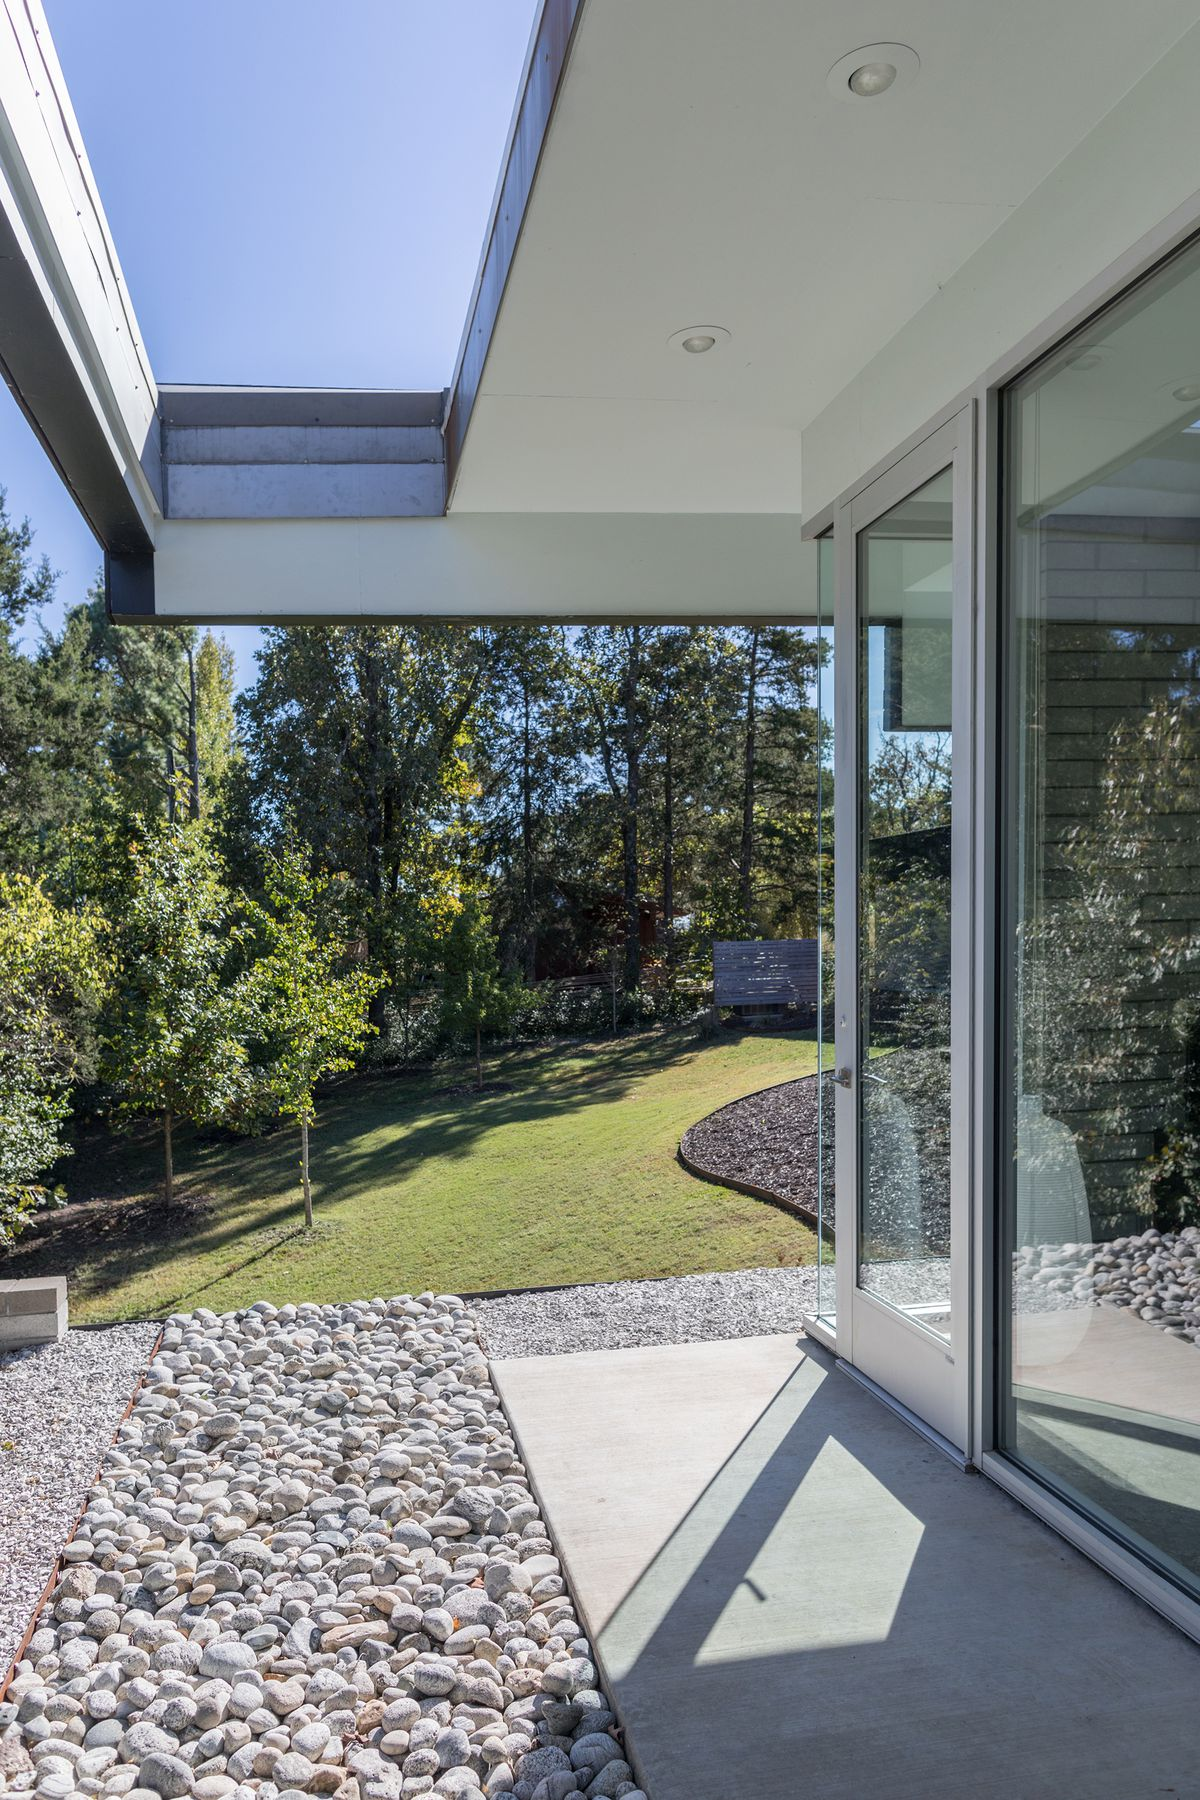 A long overhang over a big bank of glass doors has a rectangular opening in it.